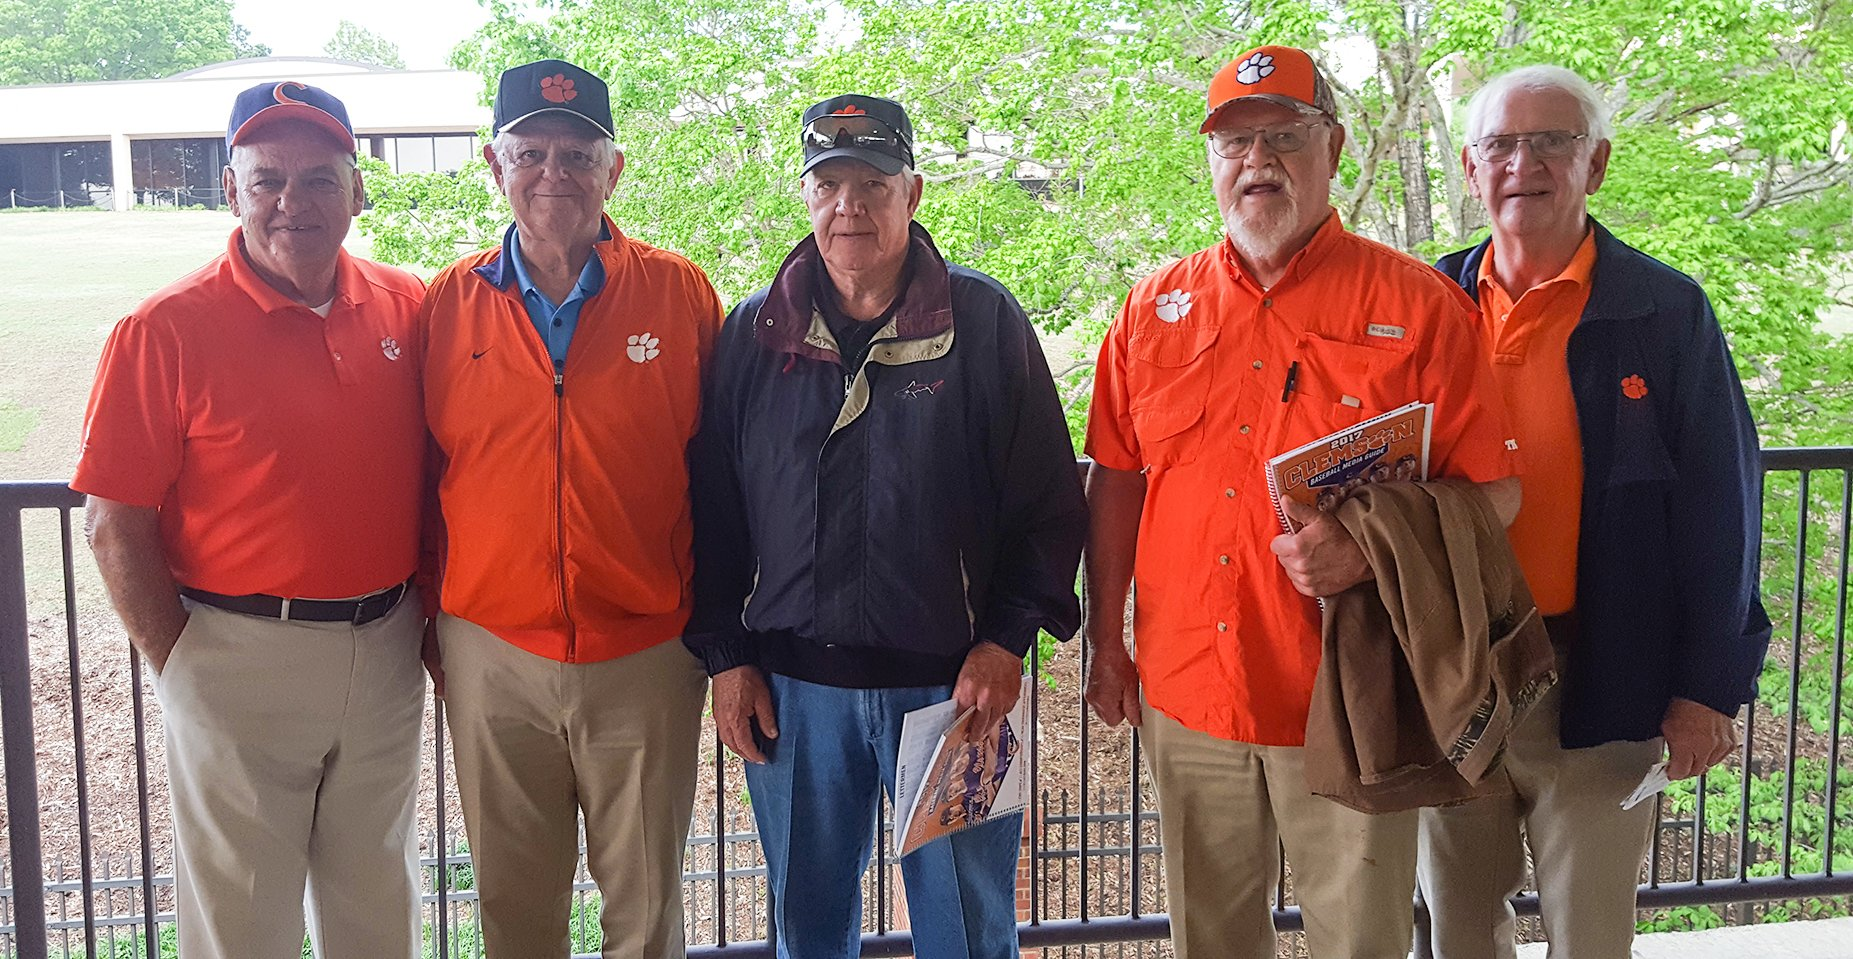 It's an honor to welcome back former Tigers Stan Ayers, Ben Marsella, Bill Burnette, Joey Taylor & Nicky Lomax at our game! #ClemsonFamily https://t.co/jChPU7KfTu